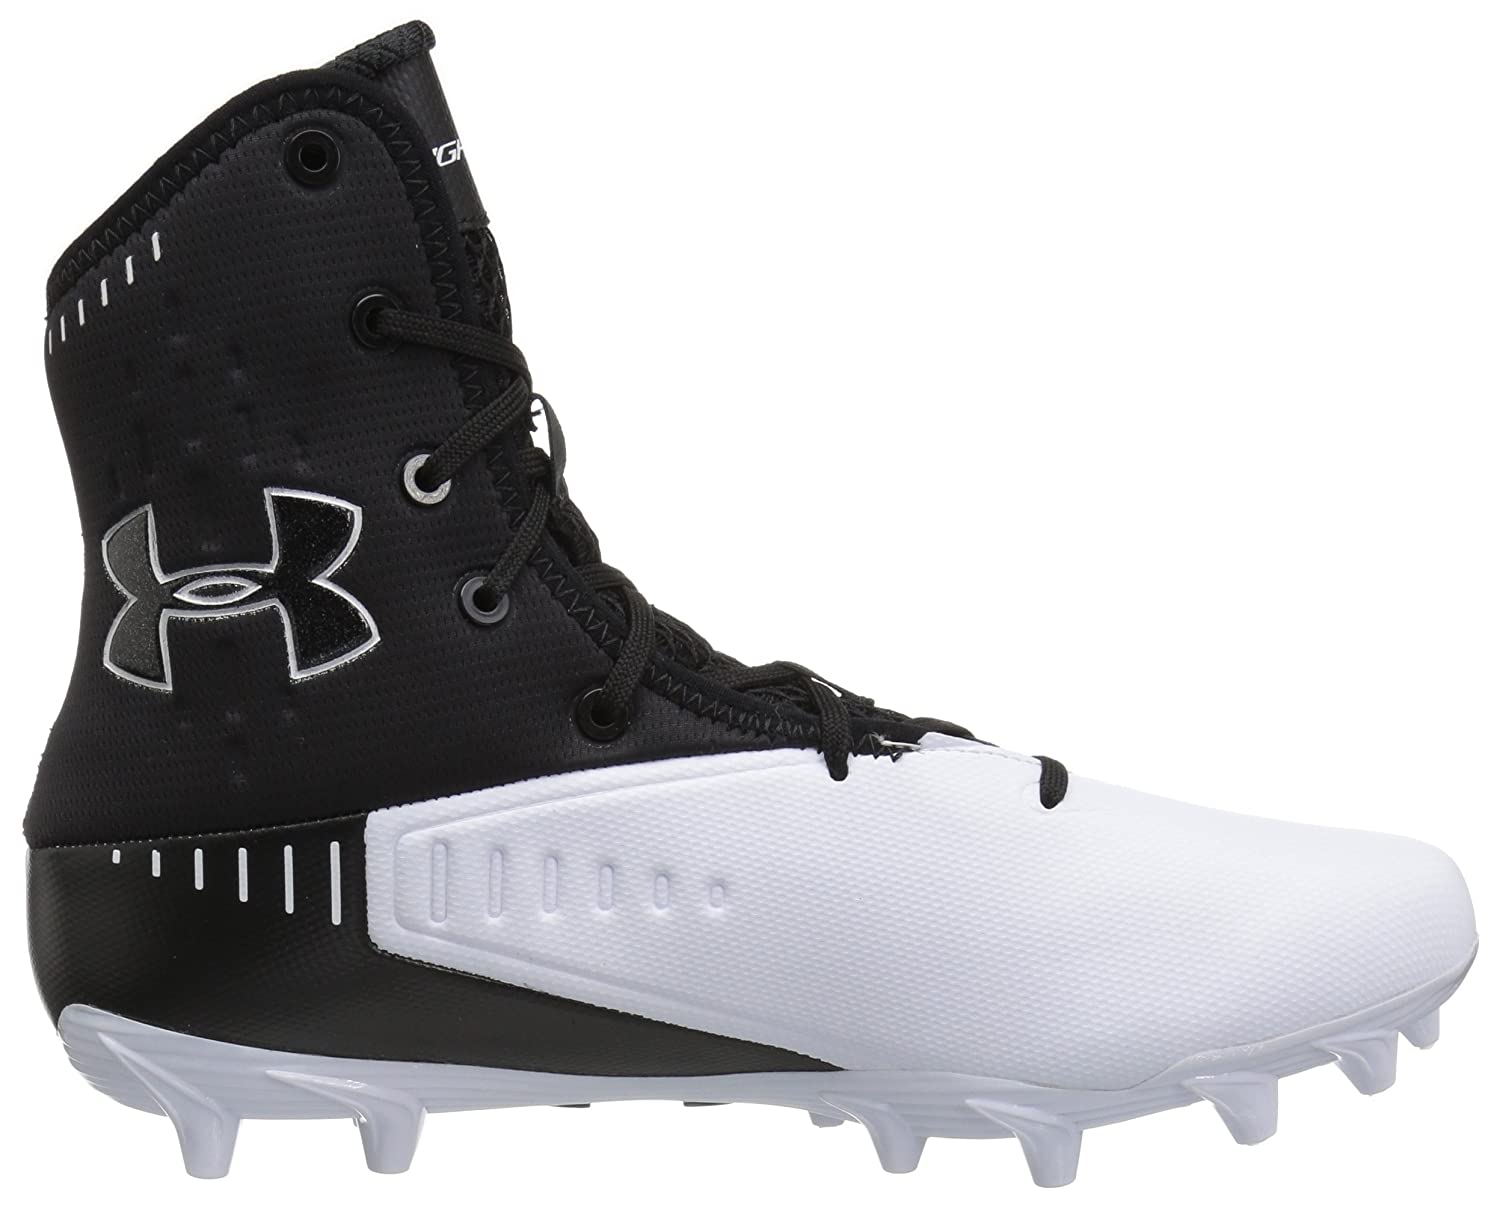 Under Armour3000413 - - - Highlight Select MC Uomo | Più economico